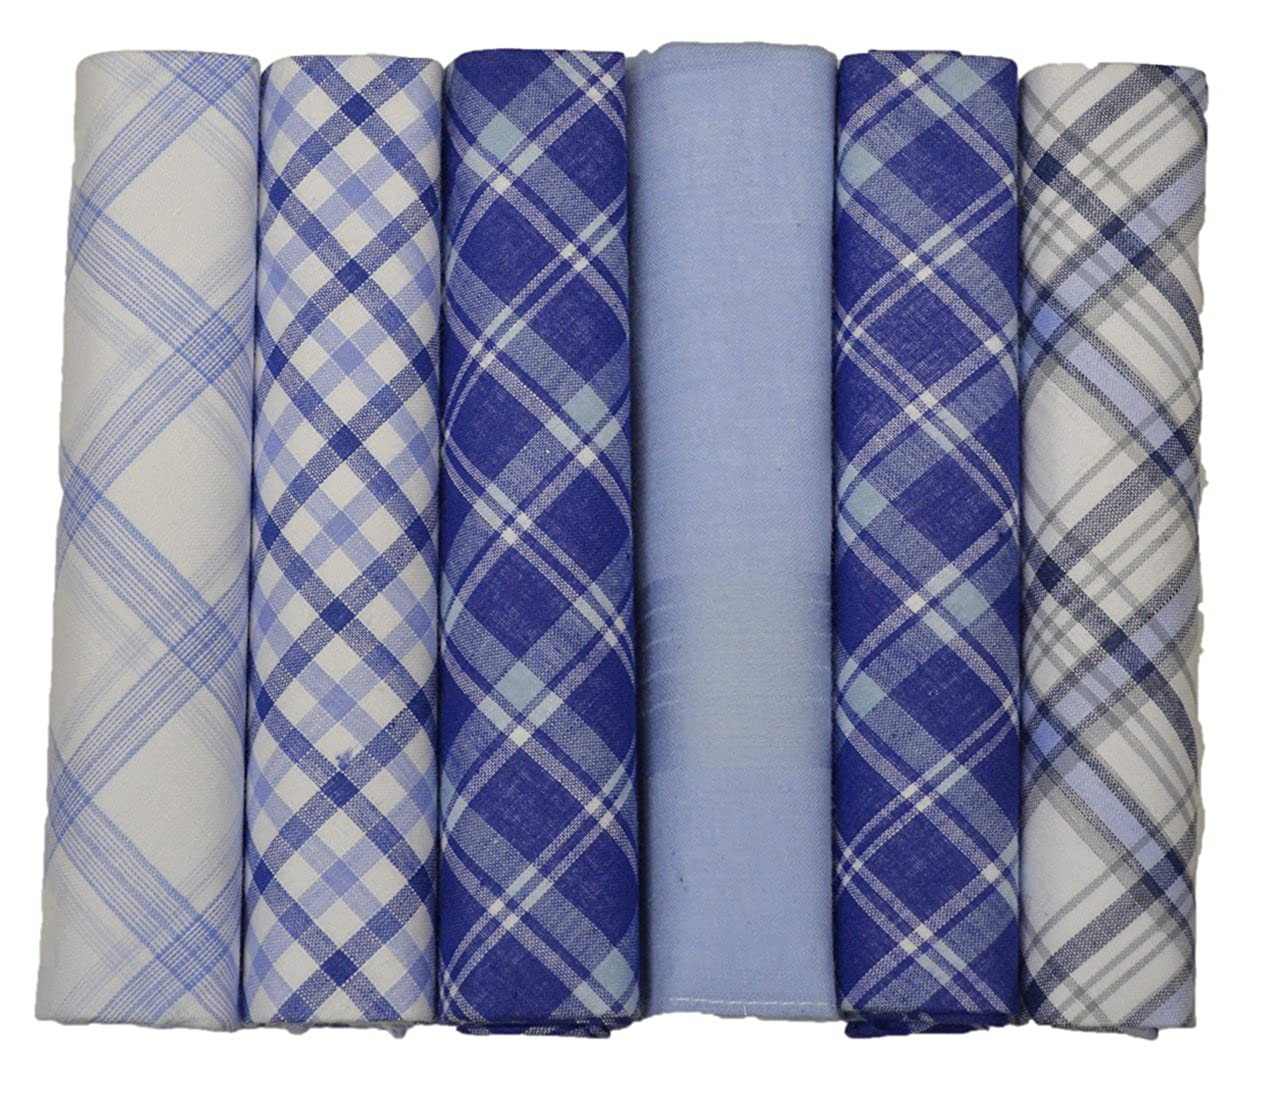 6 Pack Mens Boxed 100% Cotton Checked Handerkerchiefs